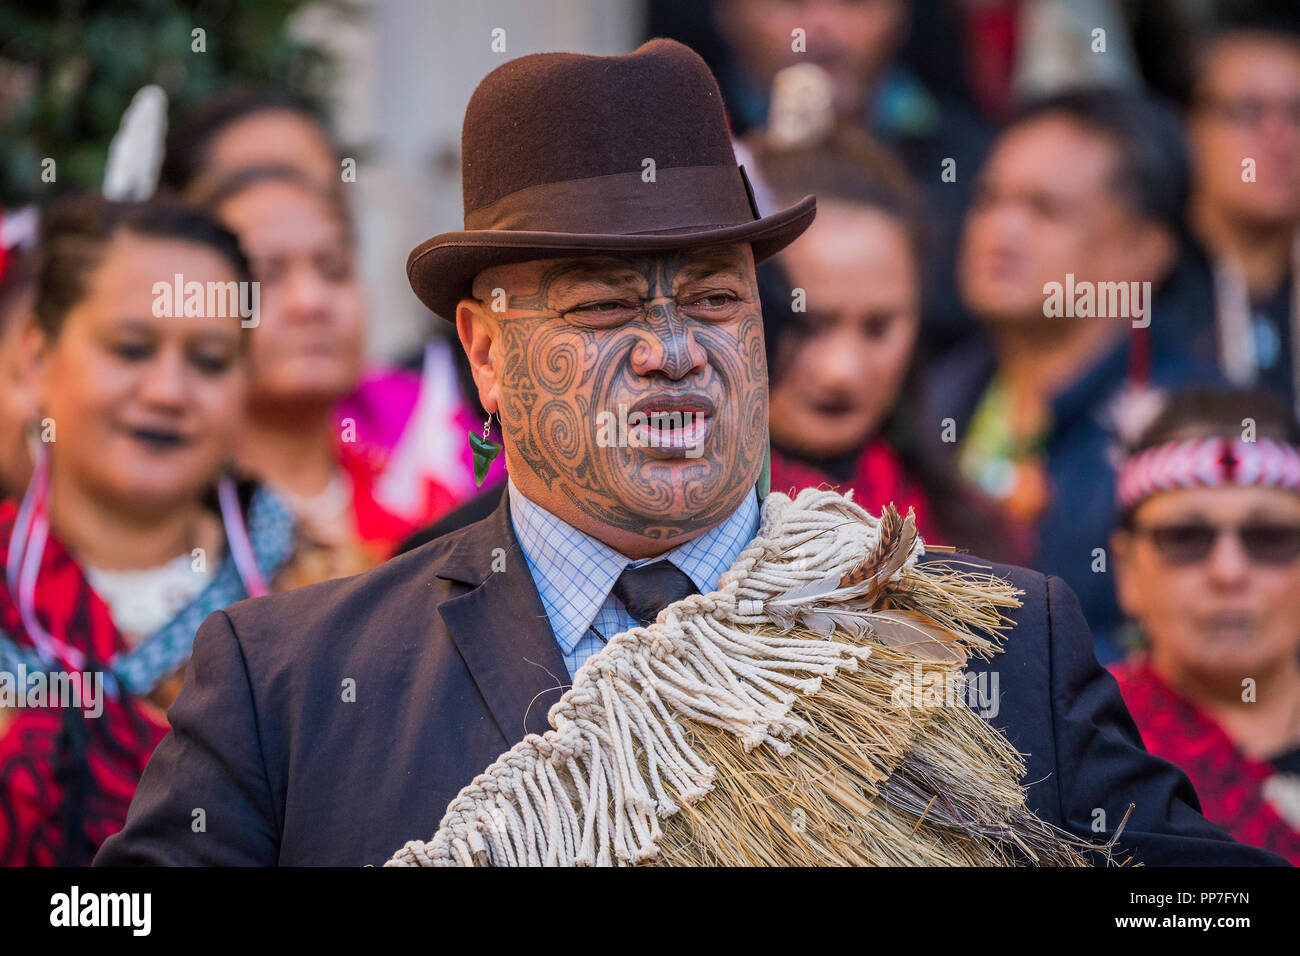 London, UK. 24th September, 2018. The final Blessing - A ceremonial procession and blessing ceremony for the Royal Academy's forthcoming Oceania exhibition. The procession started from Green Park and moved down Piccadilly to the RA Courtyard where they were formally welcomed by members of Ngāti Rānana, the London Māori Club. Countries and territories involved in the ceremony included New Zealand, Fiji, the Kingdom of Tonga, Papua New Guinea and Tahiti. Credit: Guy Bell/Alamy Live News - Stock Image